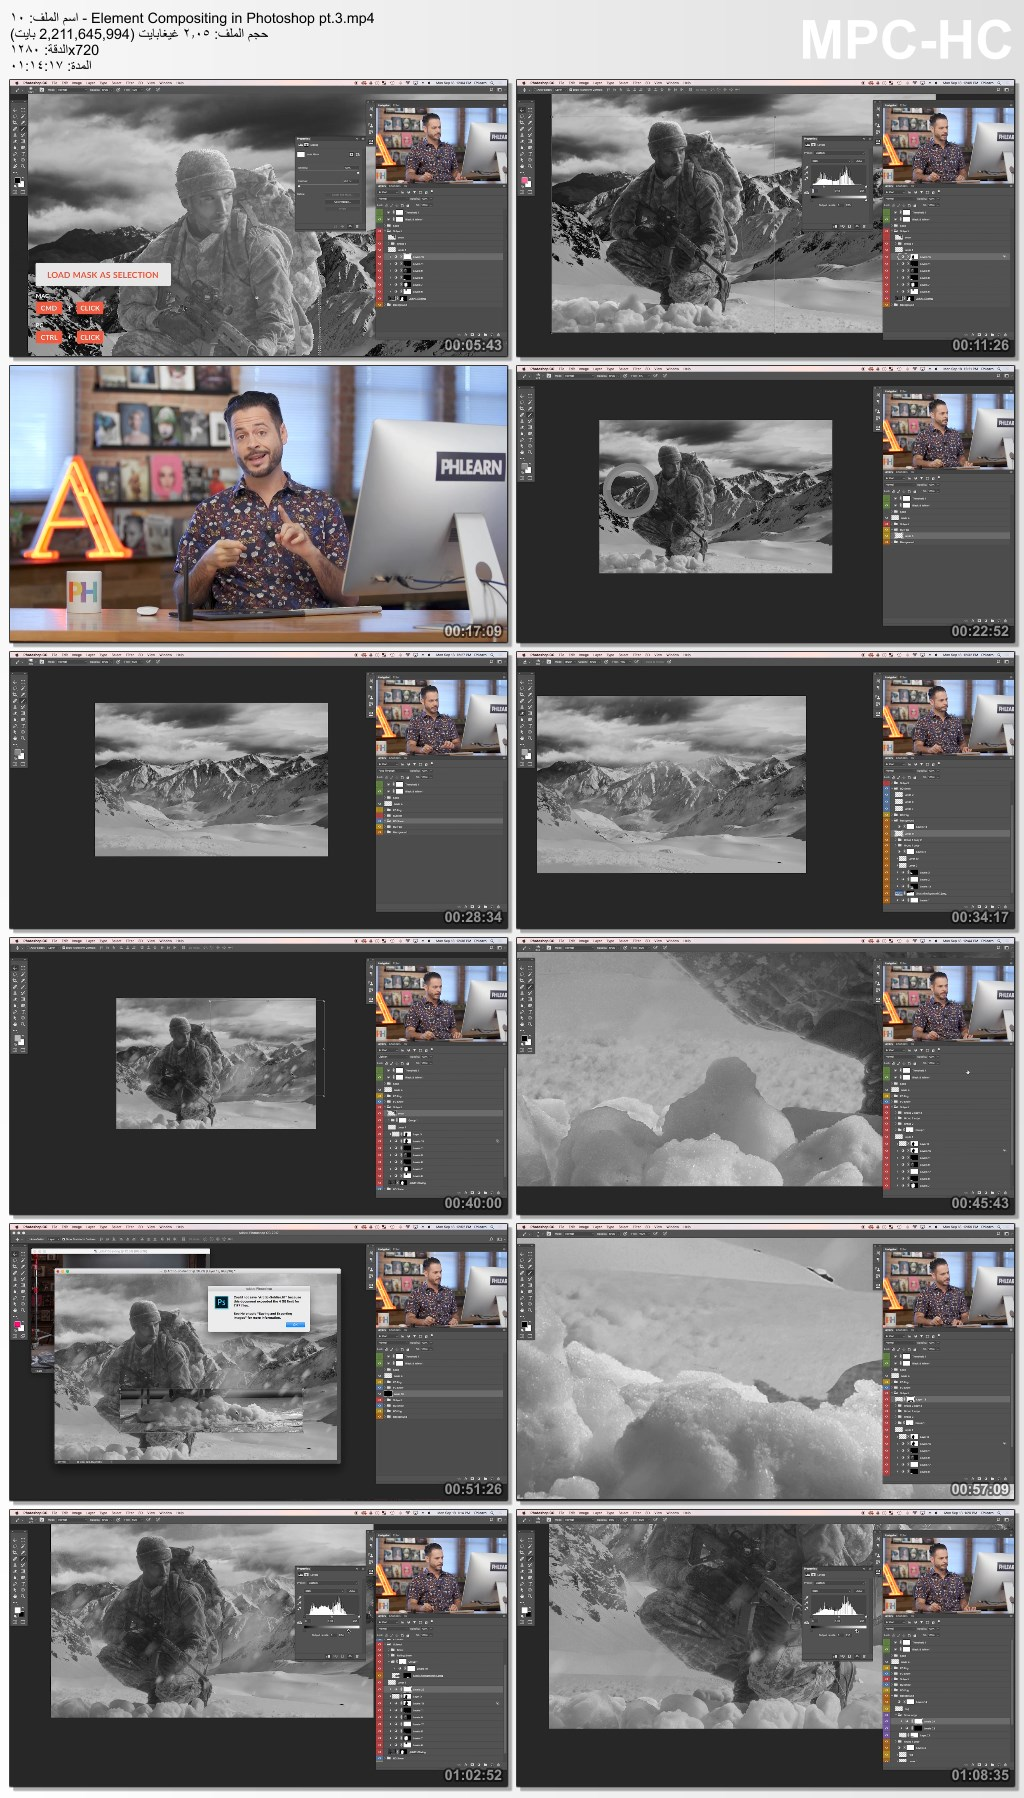 Photoshop Compositing Essential,دمج الصور,كورس,تعليم,PHLEARN,تعلم الفوتوشوب,دمج الصور بالفوتوشوب